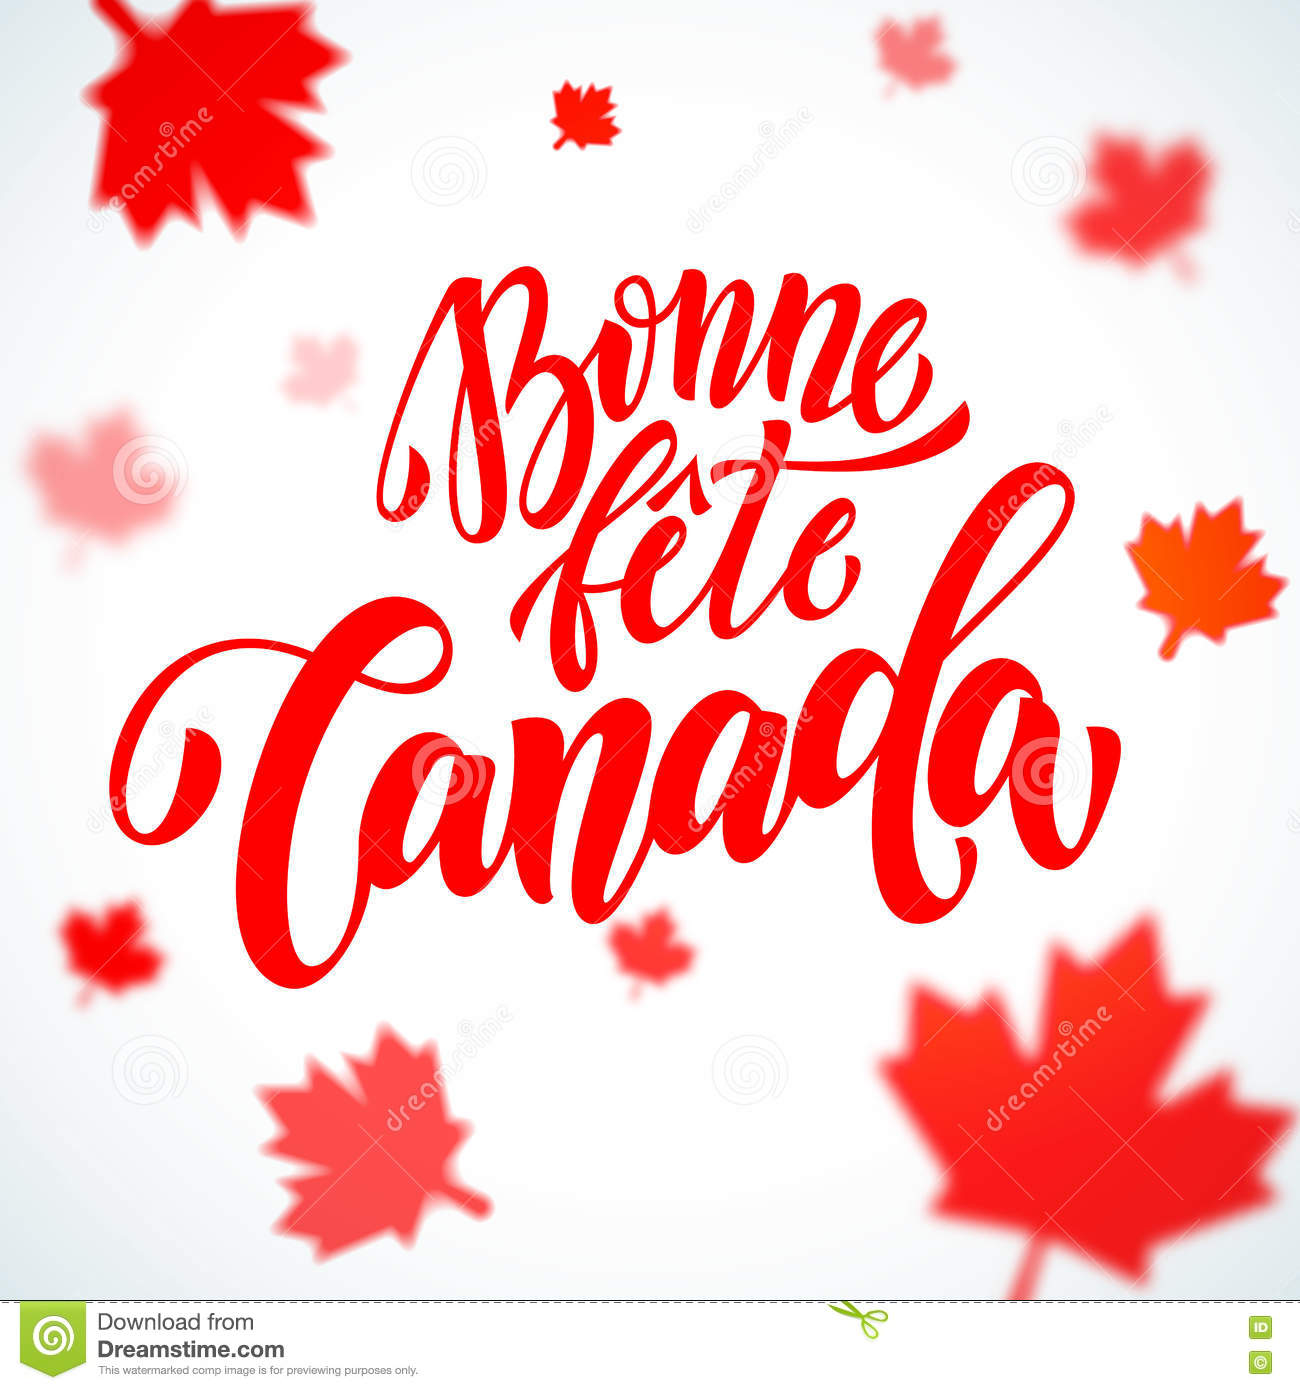 Bonne fete canada day greeting card in french stock illustration download bonne fete canada day greeting card in french stock illustration illustration of july m4hsunfo